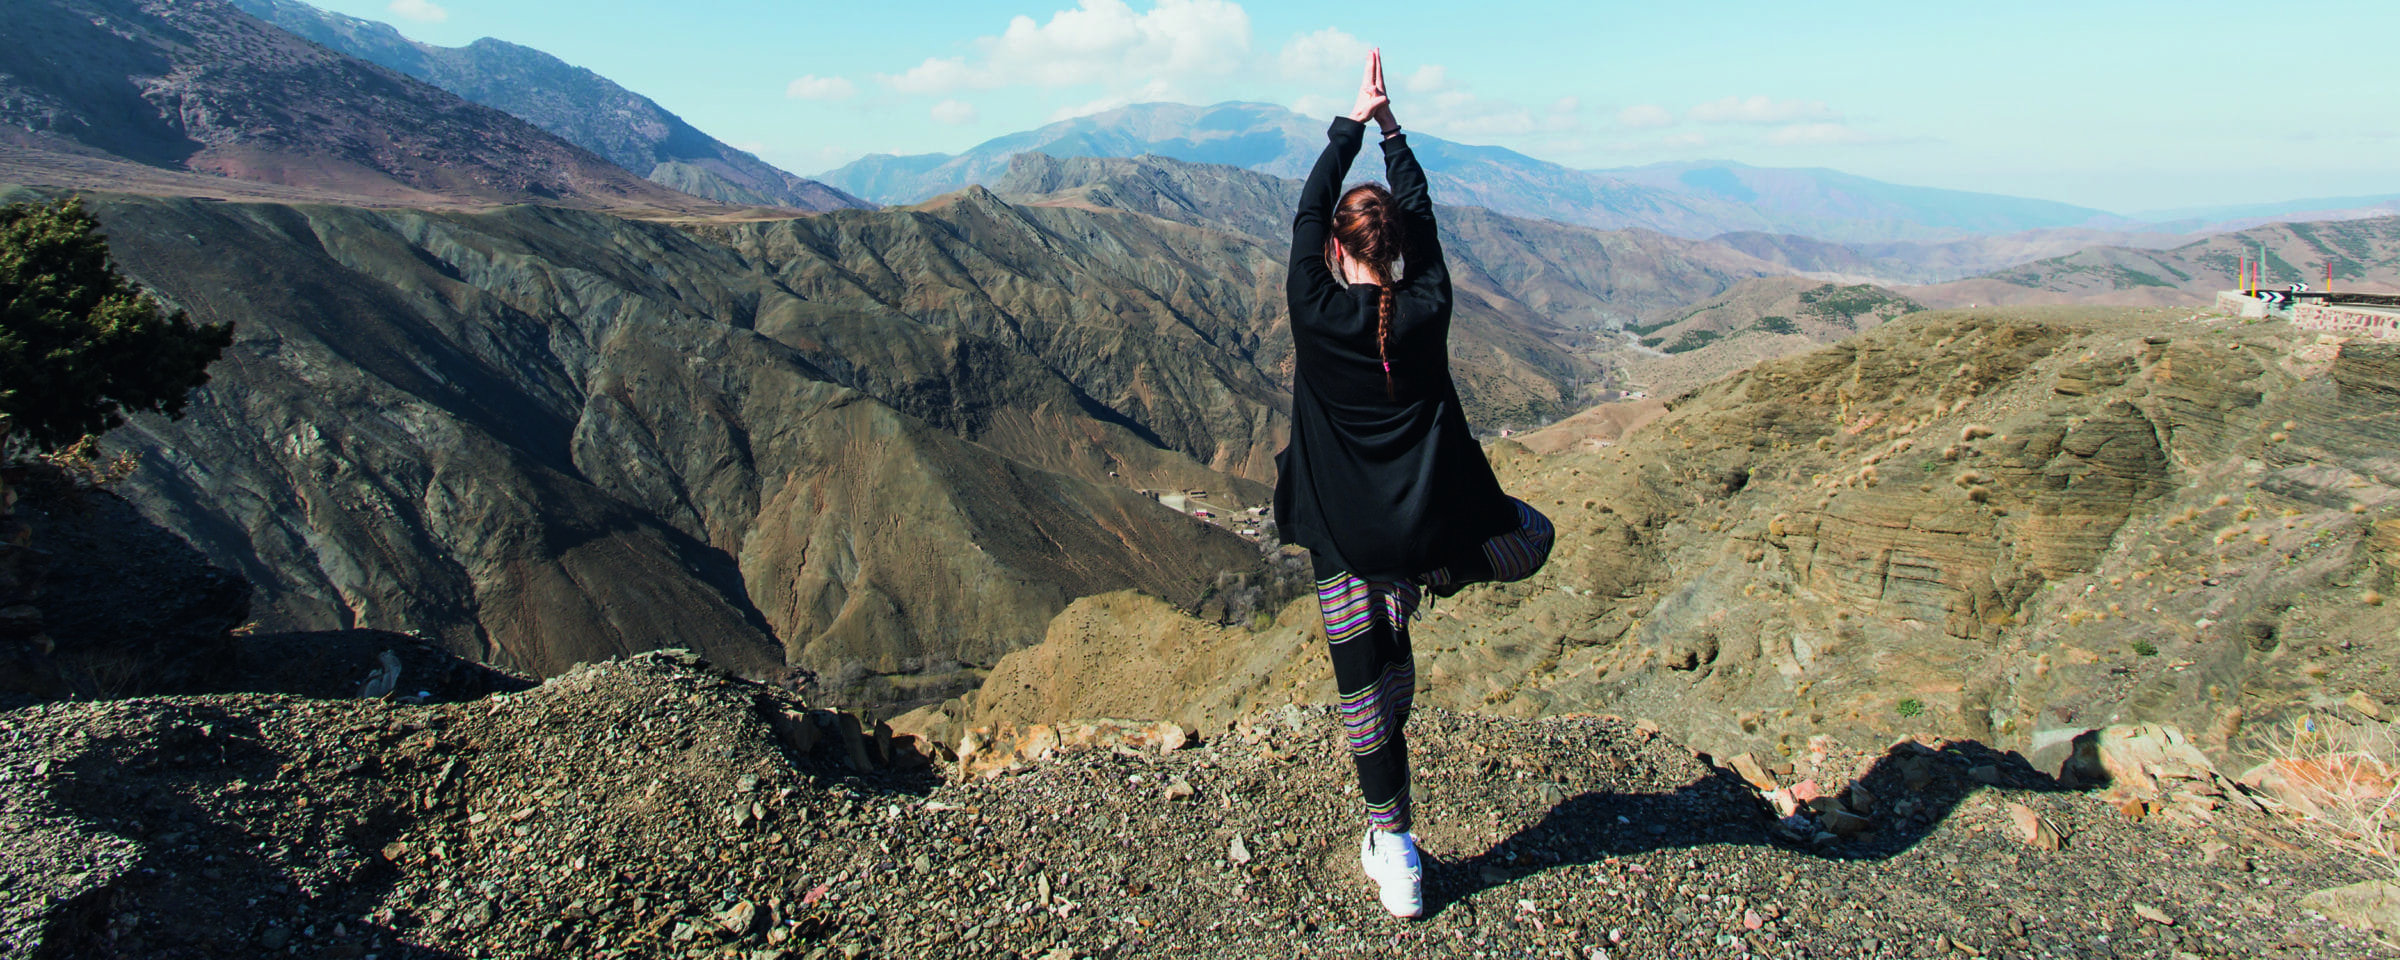 YOGA RETREATS IN MOROCCO for nomad hearted people - NOSADE